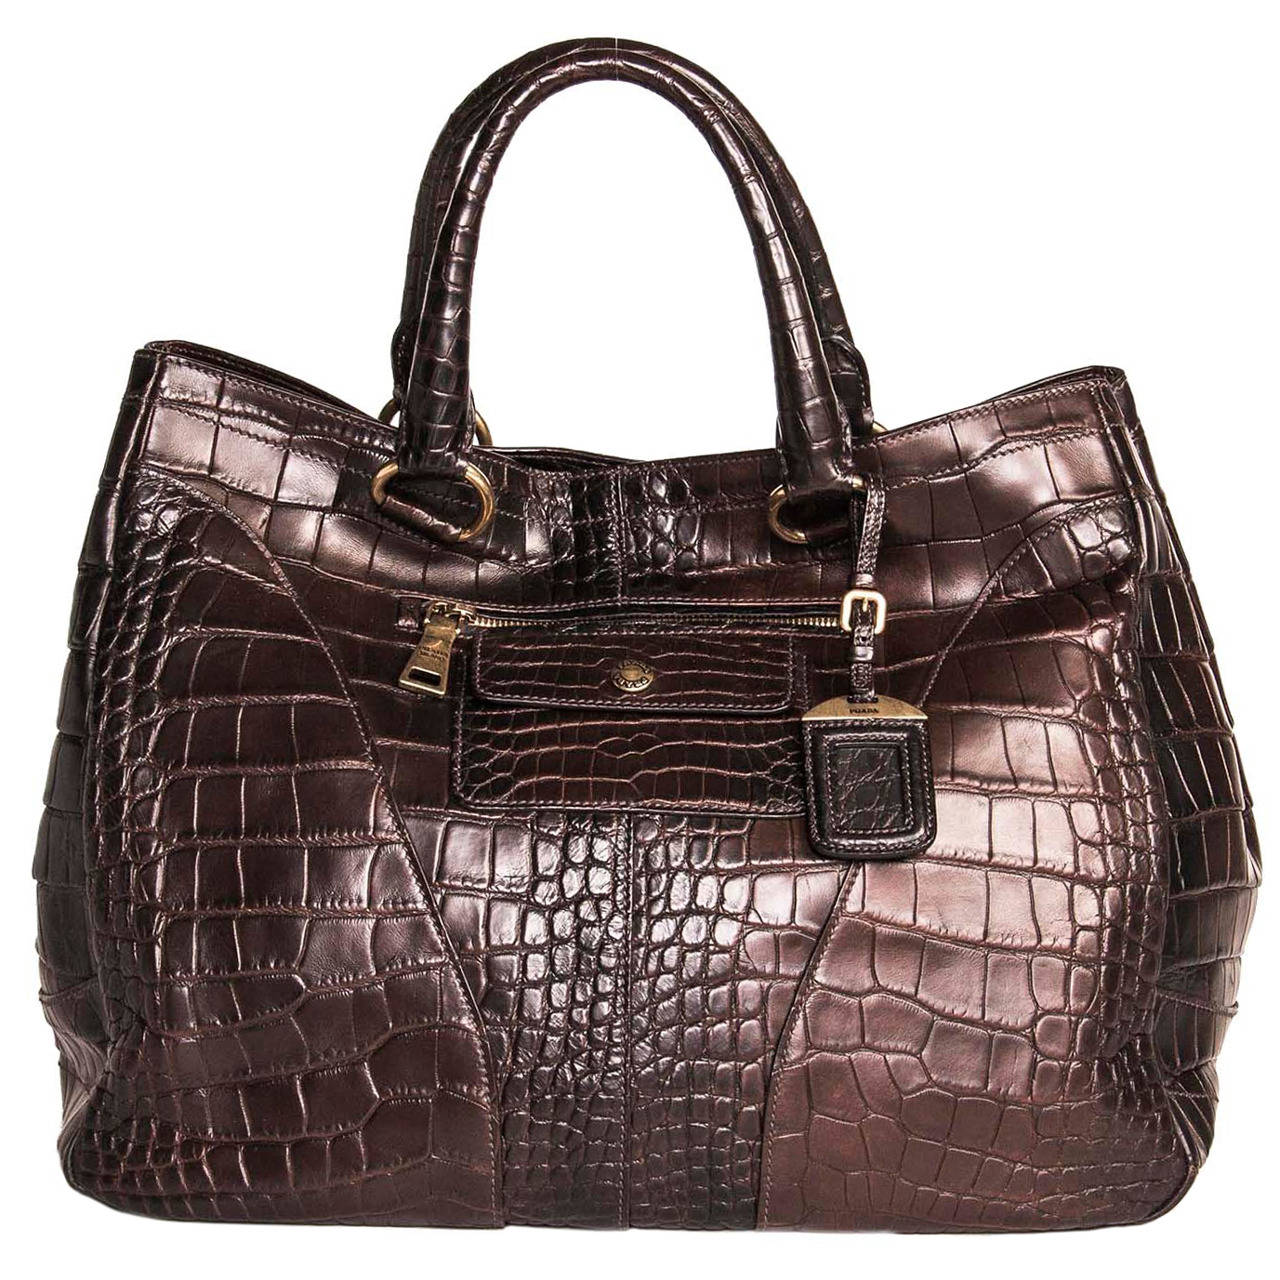 59e9d05dc2b4 Prada Burgundy Crocodile Oversized Bag For Sale at 1stdibs